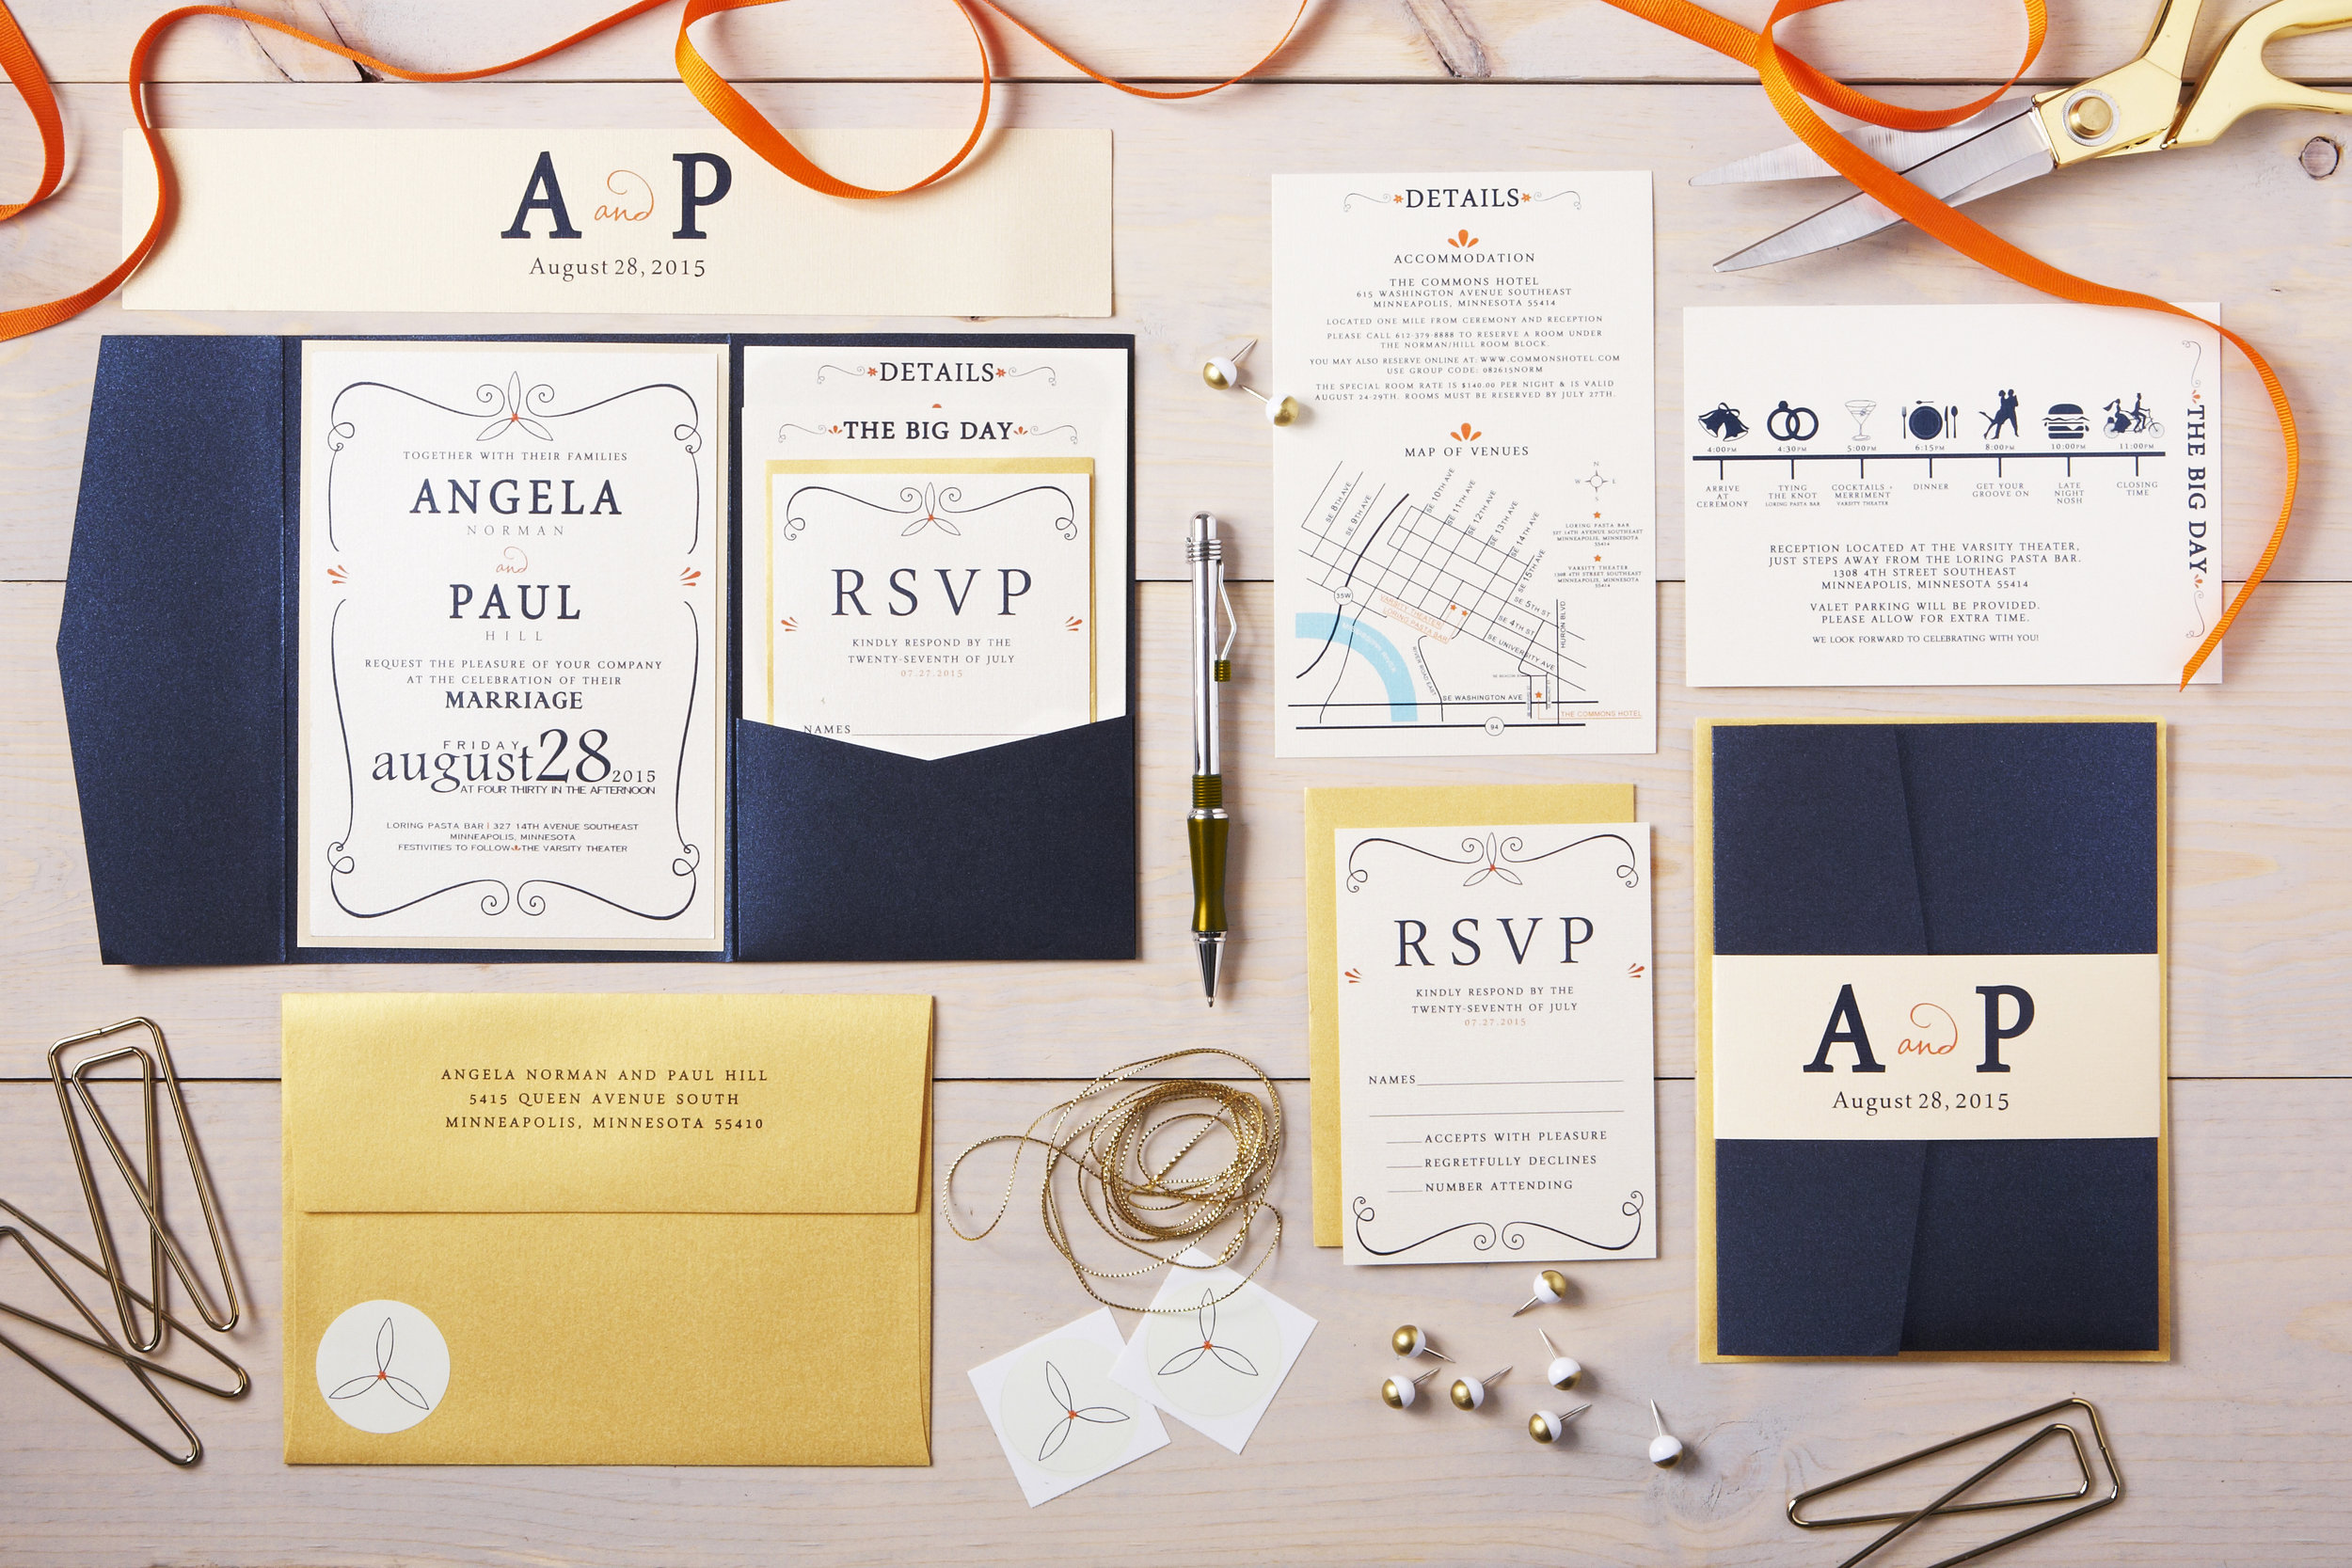 Angie_custom_wedding_invitation_huntwrightdesignco_001.jpg